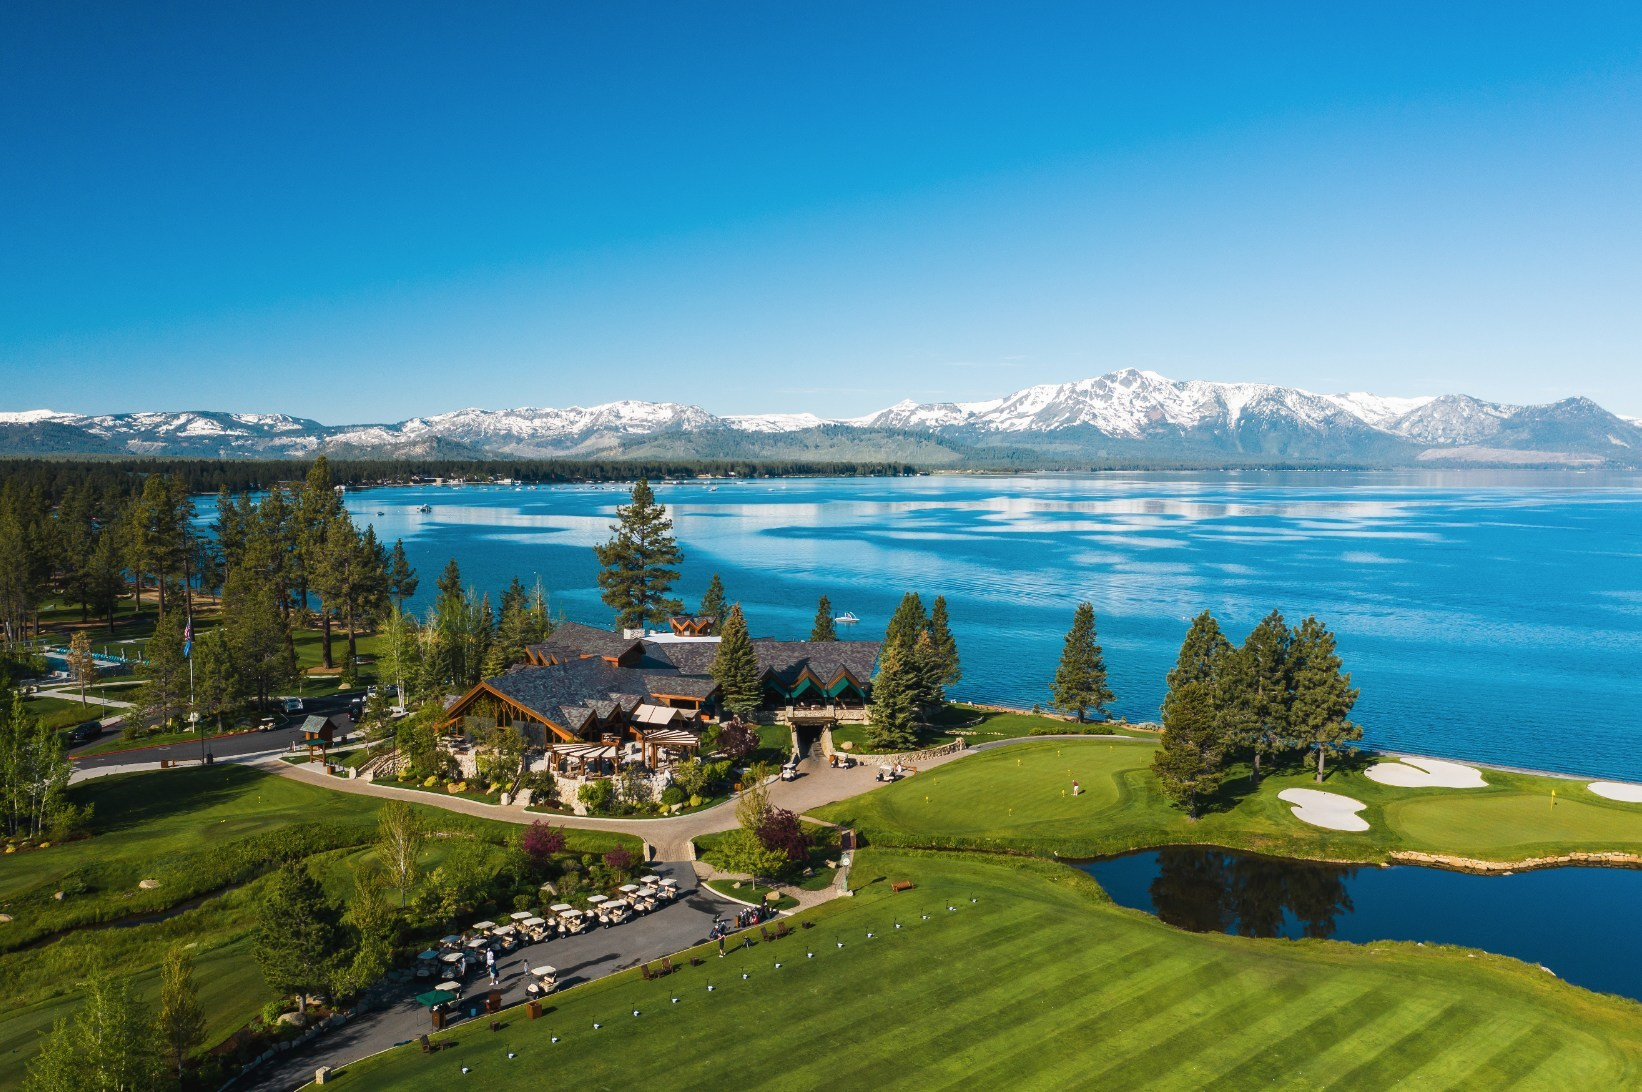 Set along the beautiful shoreline of South Lake Tahoe, Edgewood Tahoe is a world-class beachfront destination resort ideal for a getaway immersed in the Sierras with the luxe touches of resort style living.